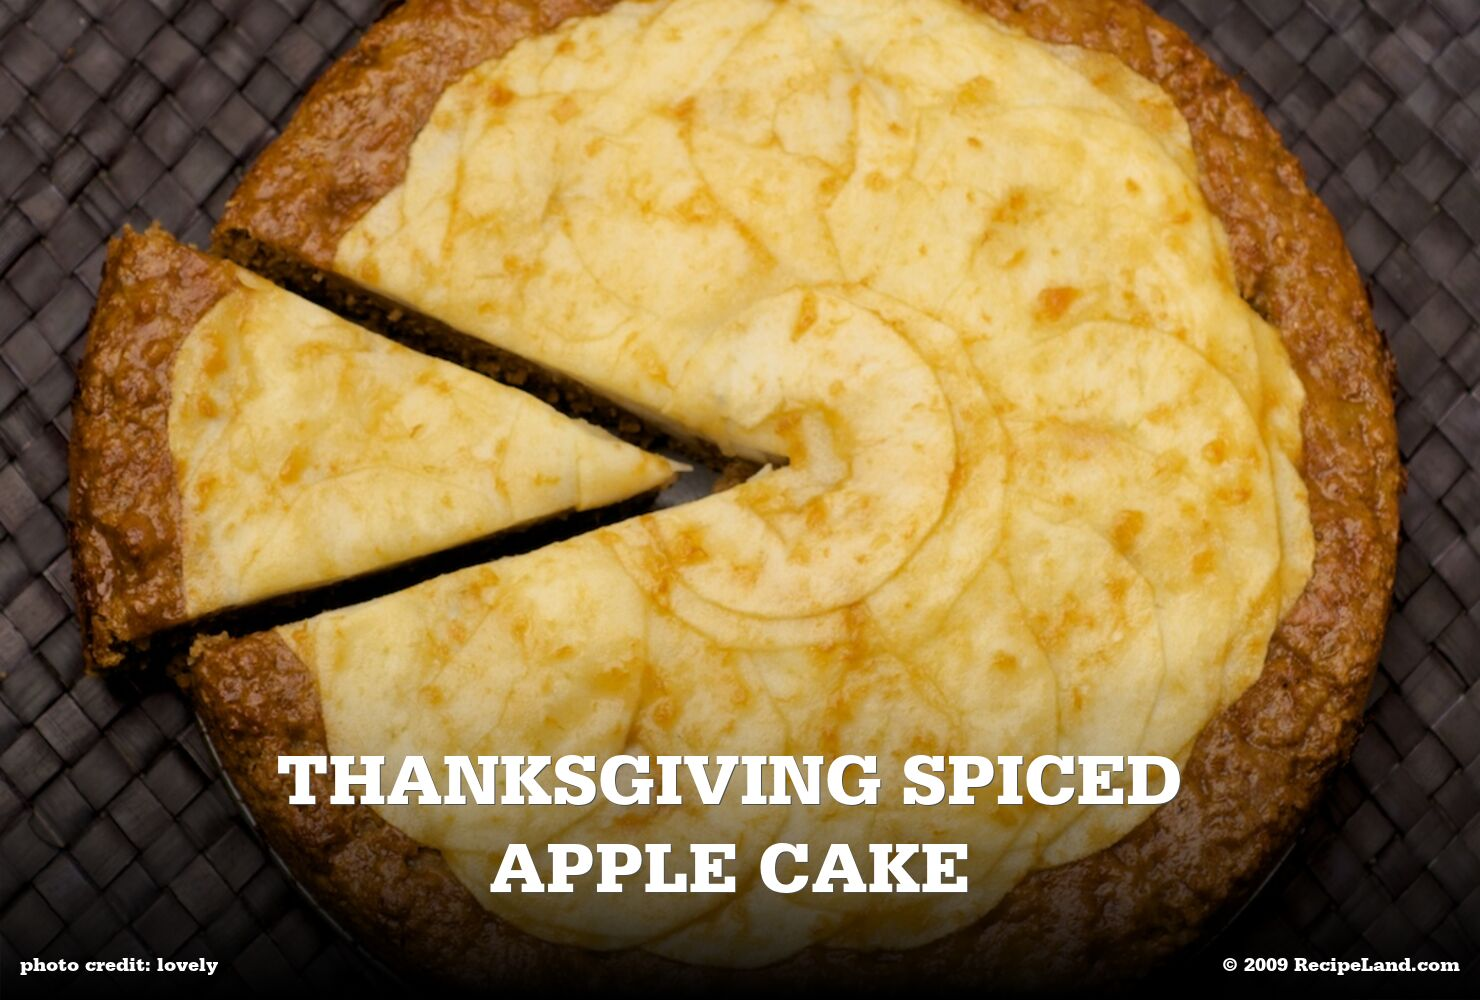 Thanksgiving Spiced Apple Cake